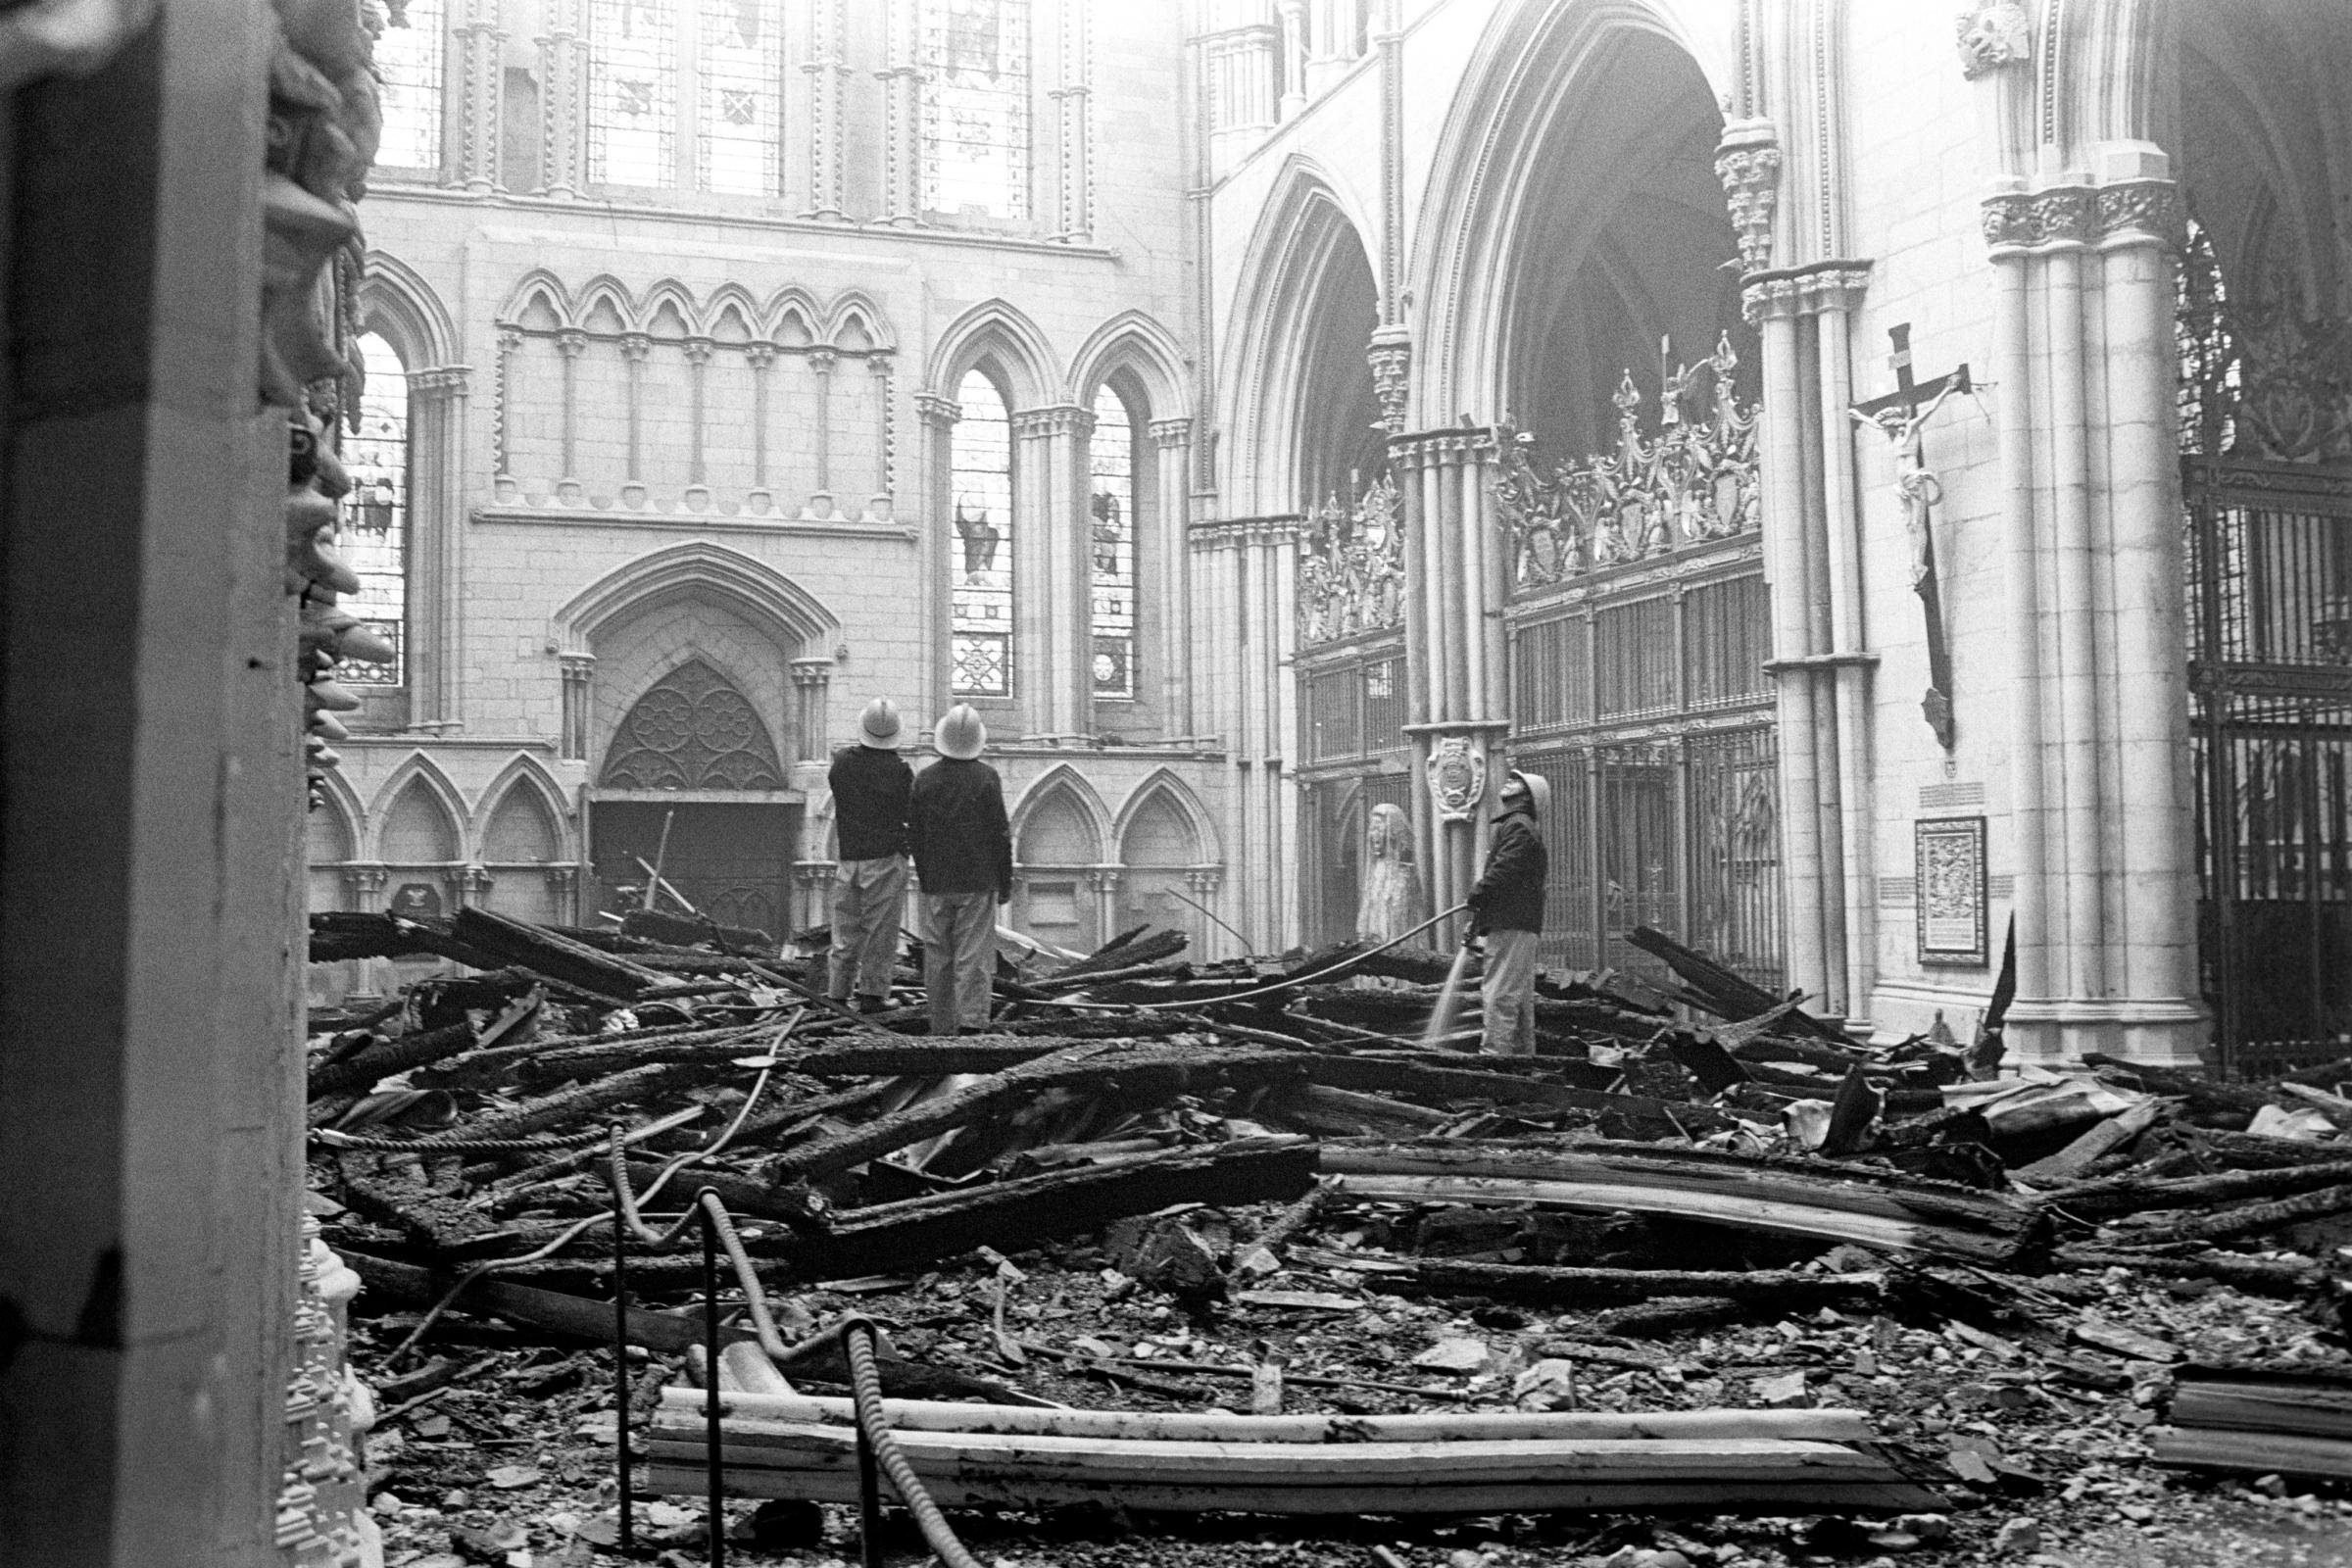 Firefighters survey the damage to the South Transept of York Minster after the blaze in 1984